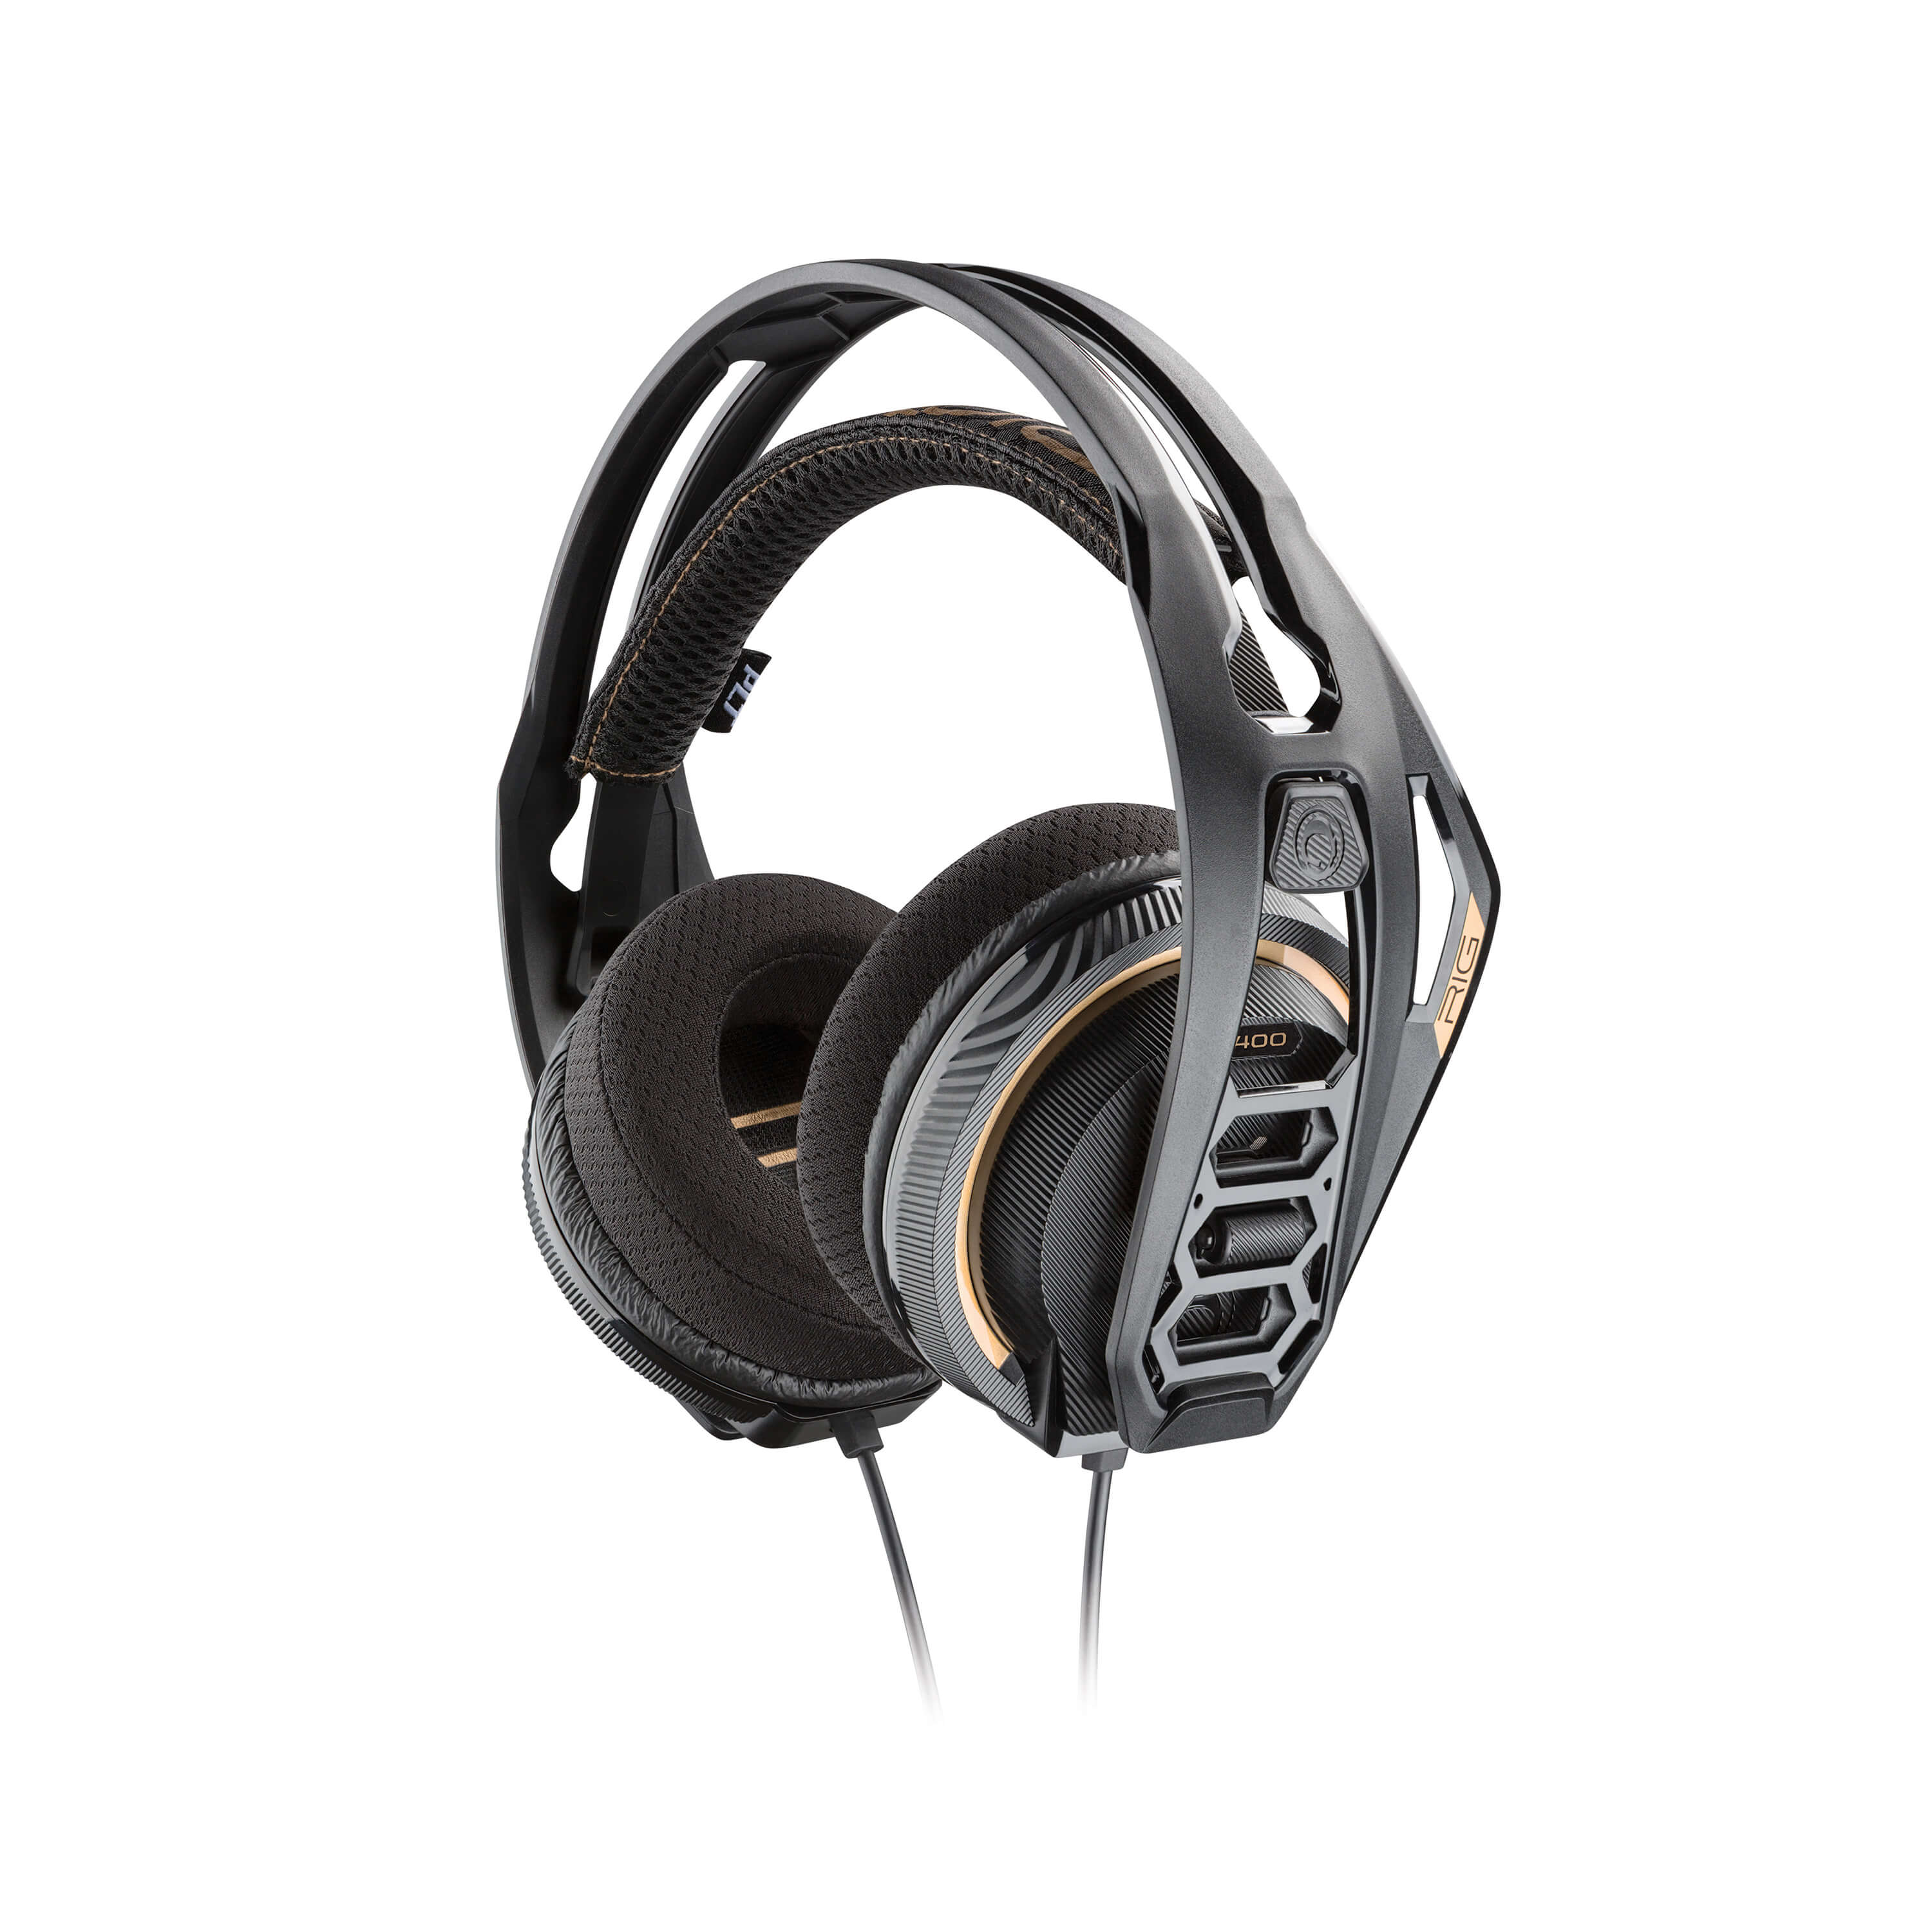 PLANTRONICS Gamingheadset PC/PS4/XBOX RIG 400 PRO HC DOLBY